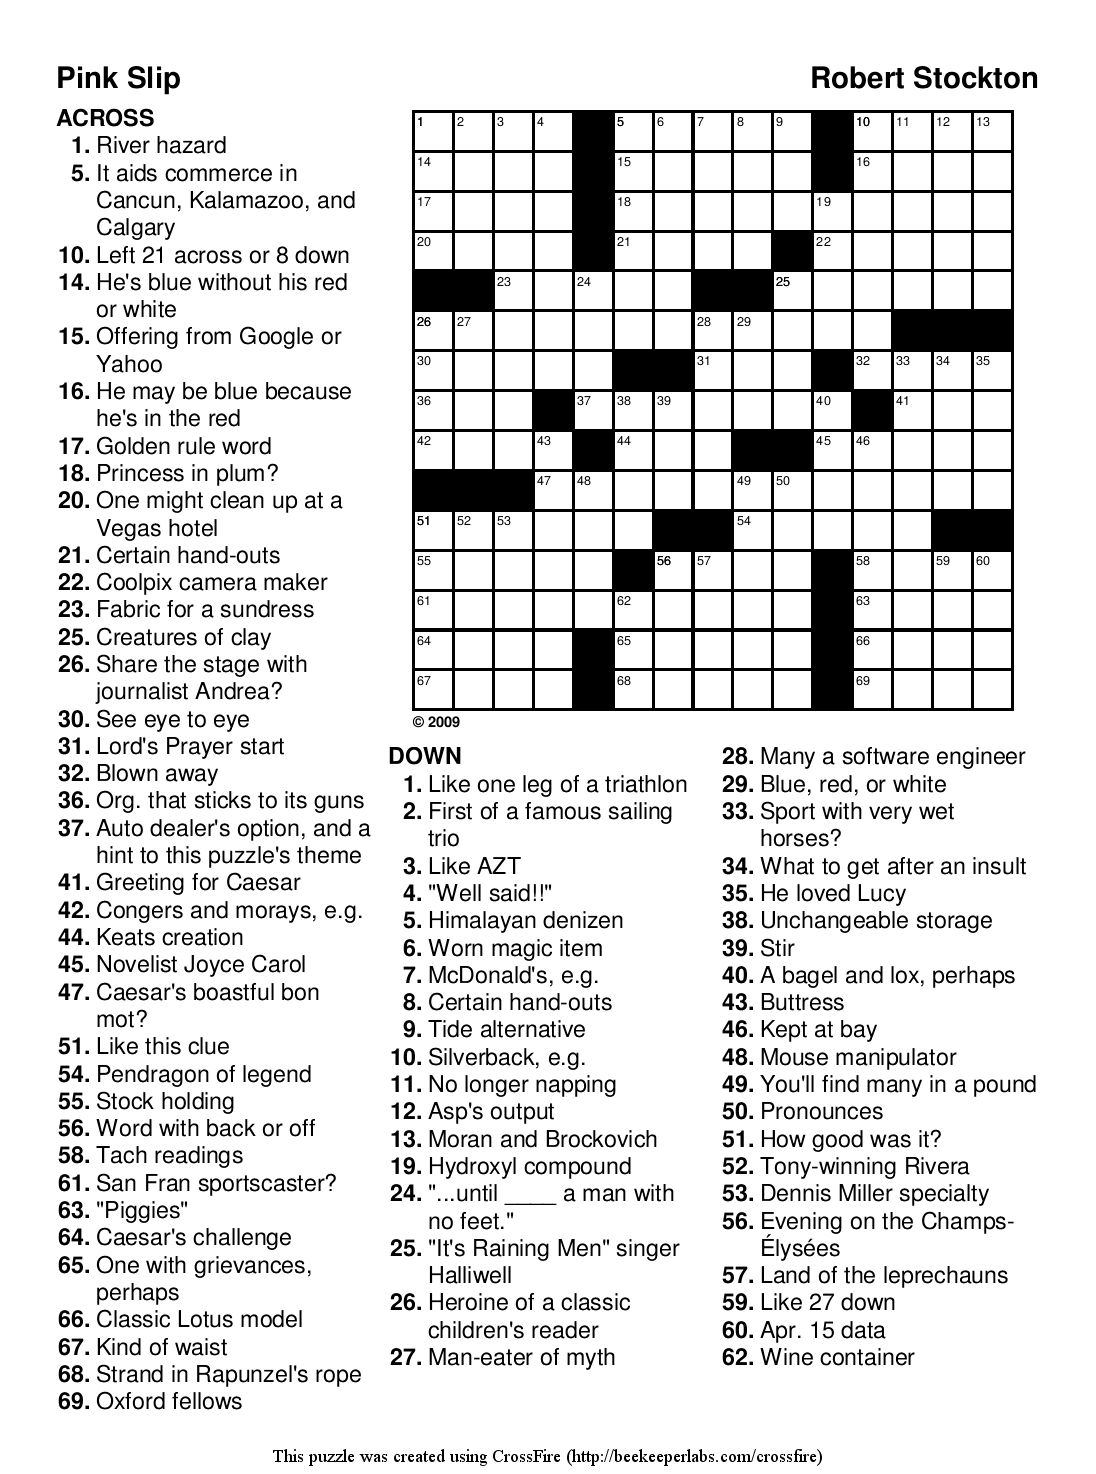 photograph regarding Printable Easy Crossword Puzzles titled Very simple printable crossword puzzels - InfoCap Ltd.